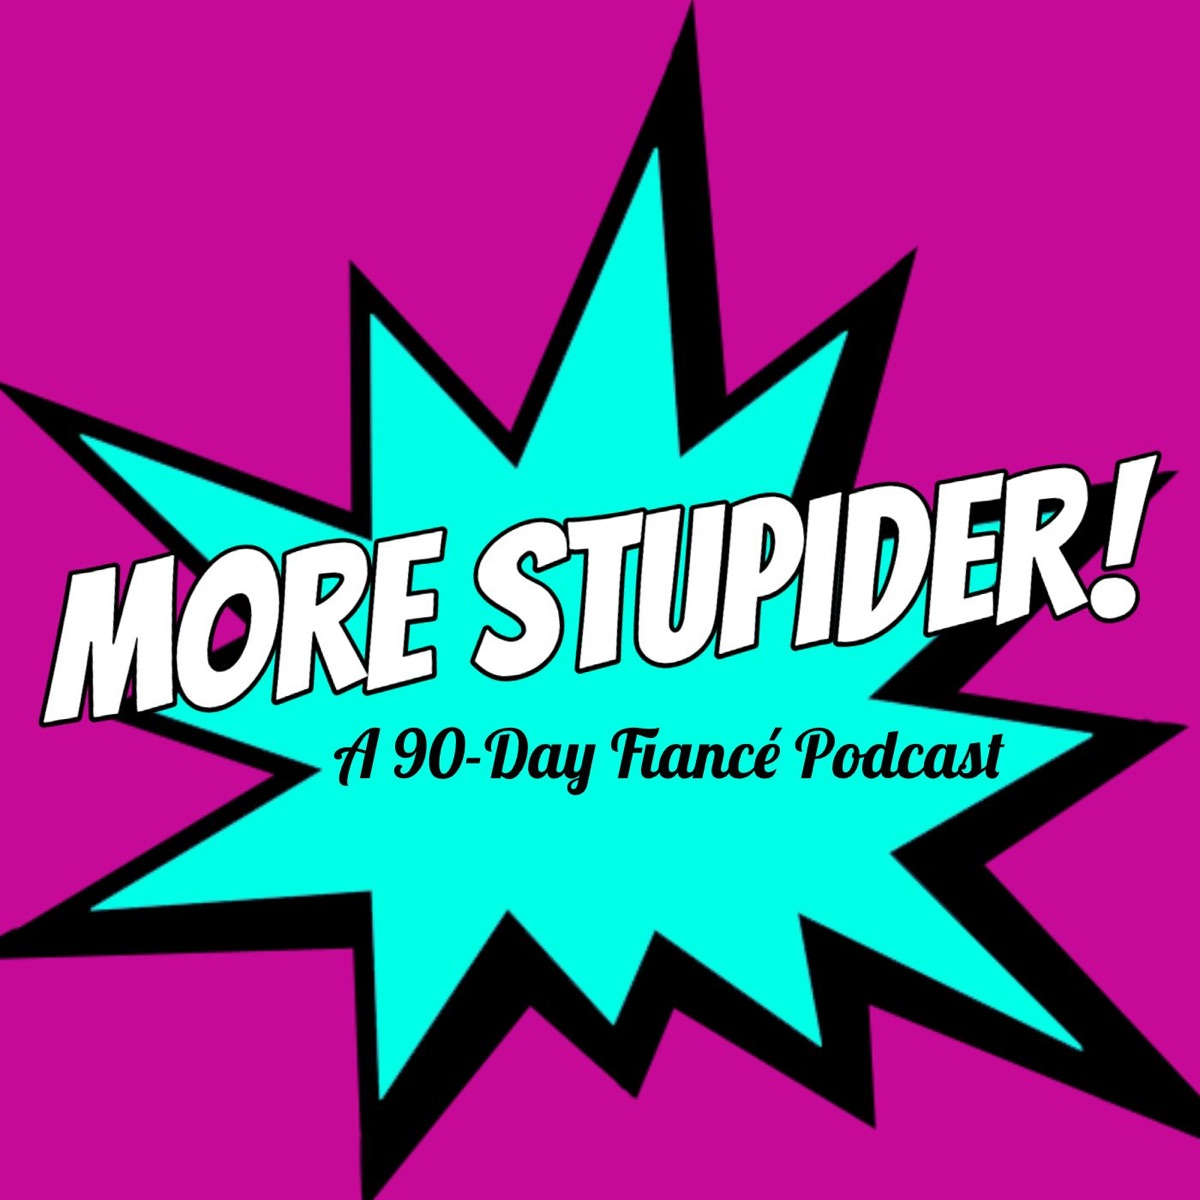 More Stupider: A 90-Day Fiance Podcast